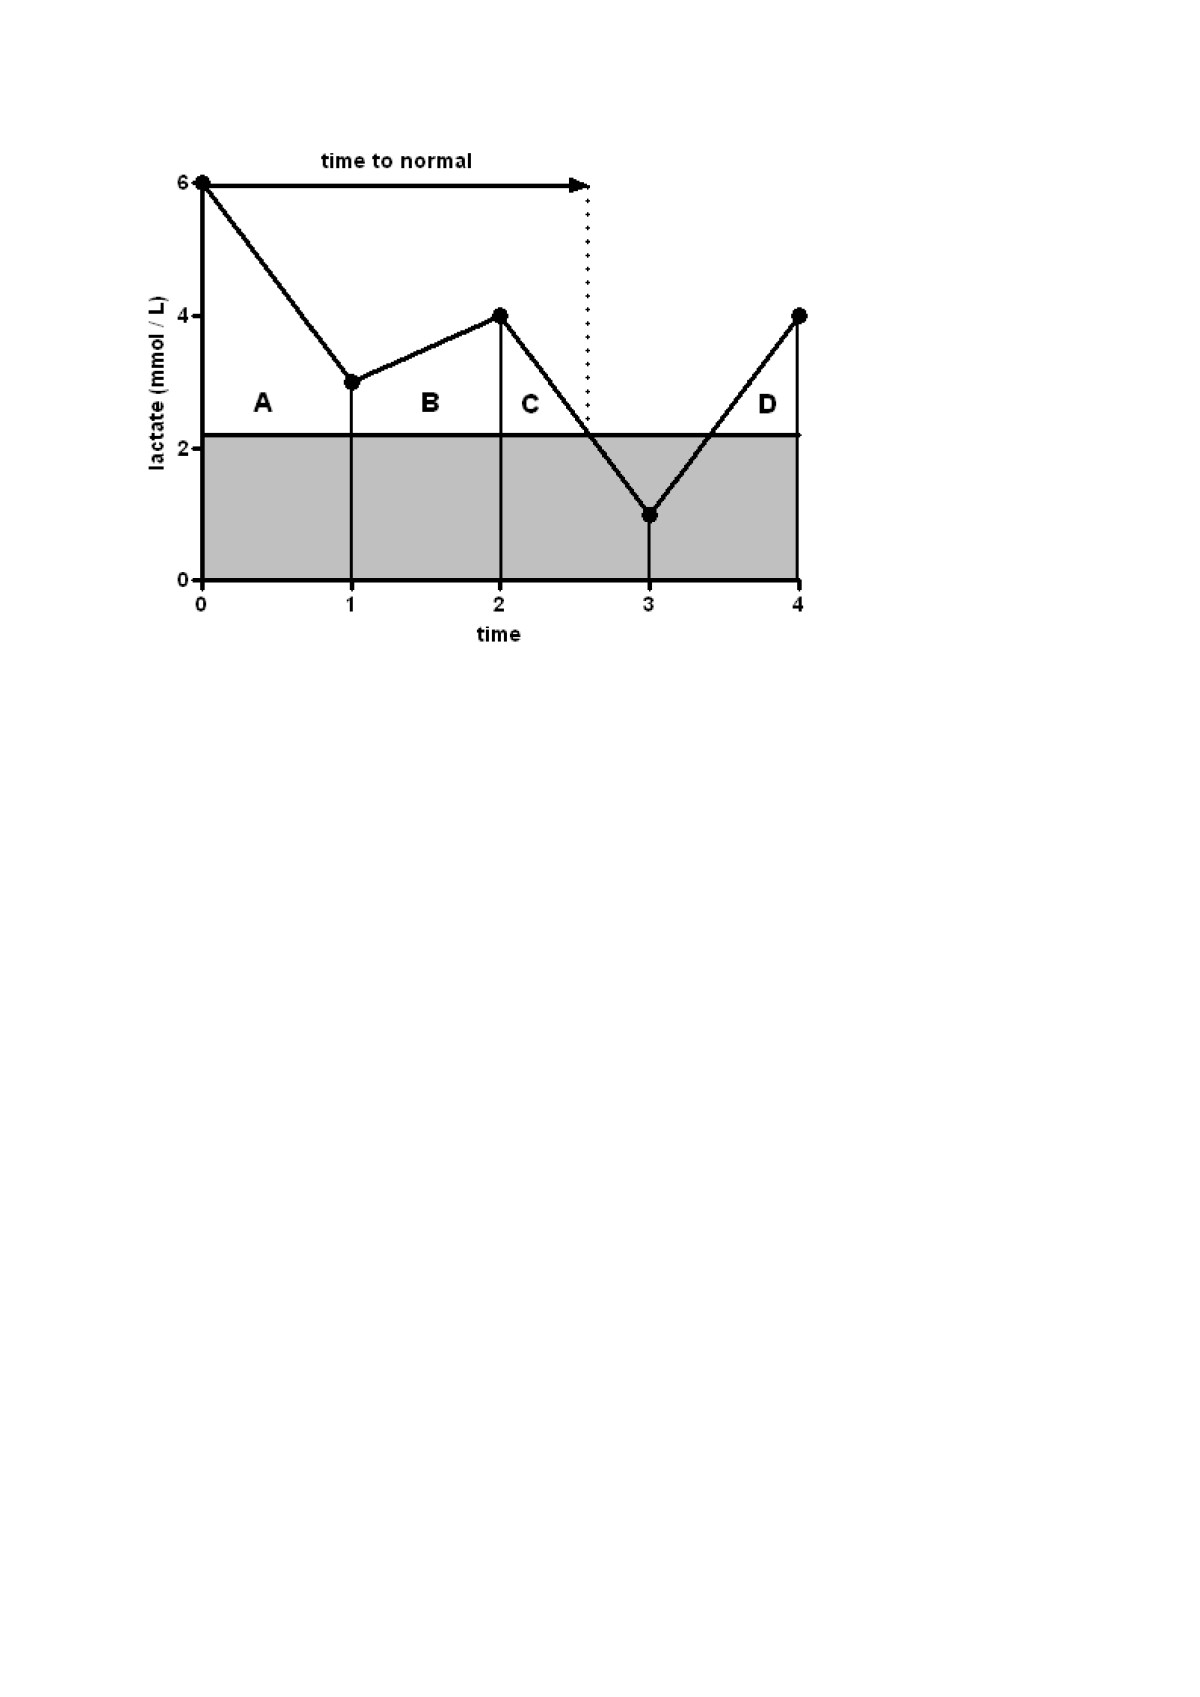 http://static-content.springer.com/image/art%3A10.1186%2F2110-5820-3-6/MediaObjects/13613_2012_Article_130_Fig1_HTML.jpg